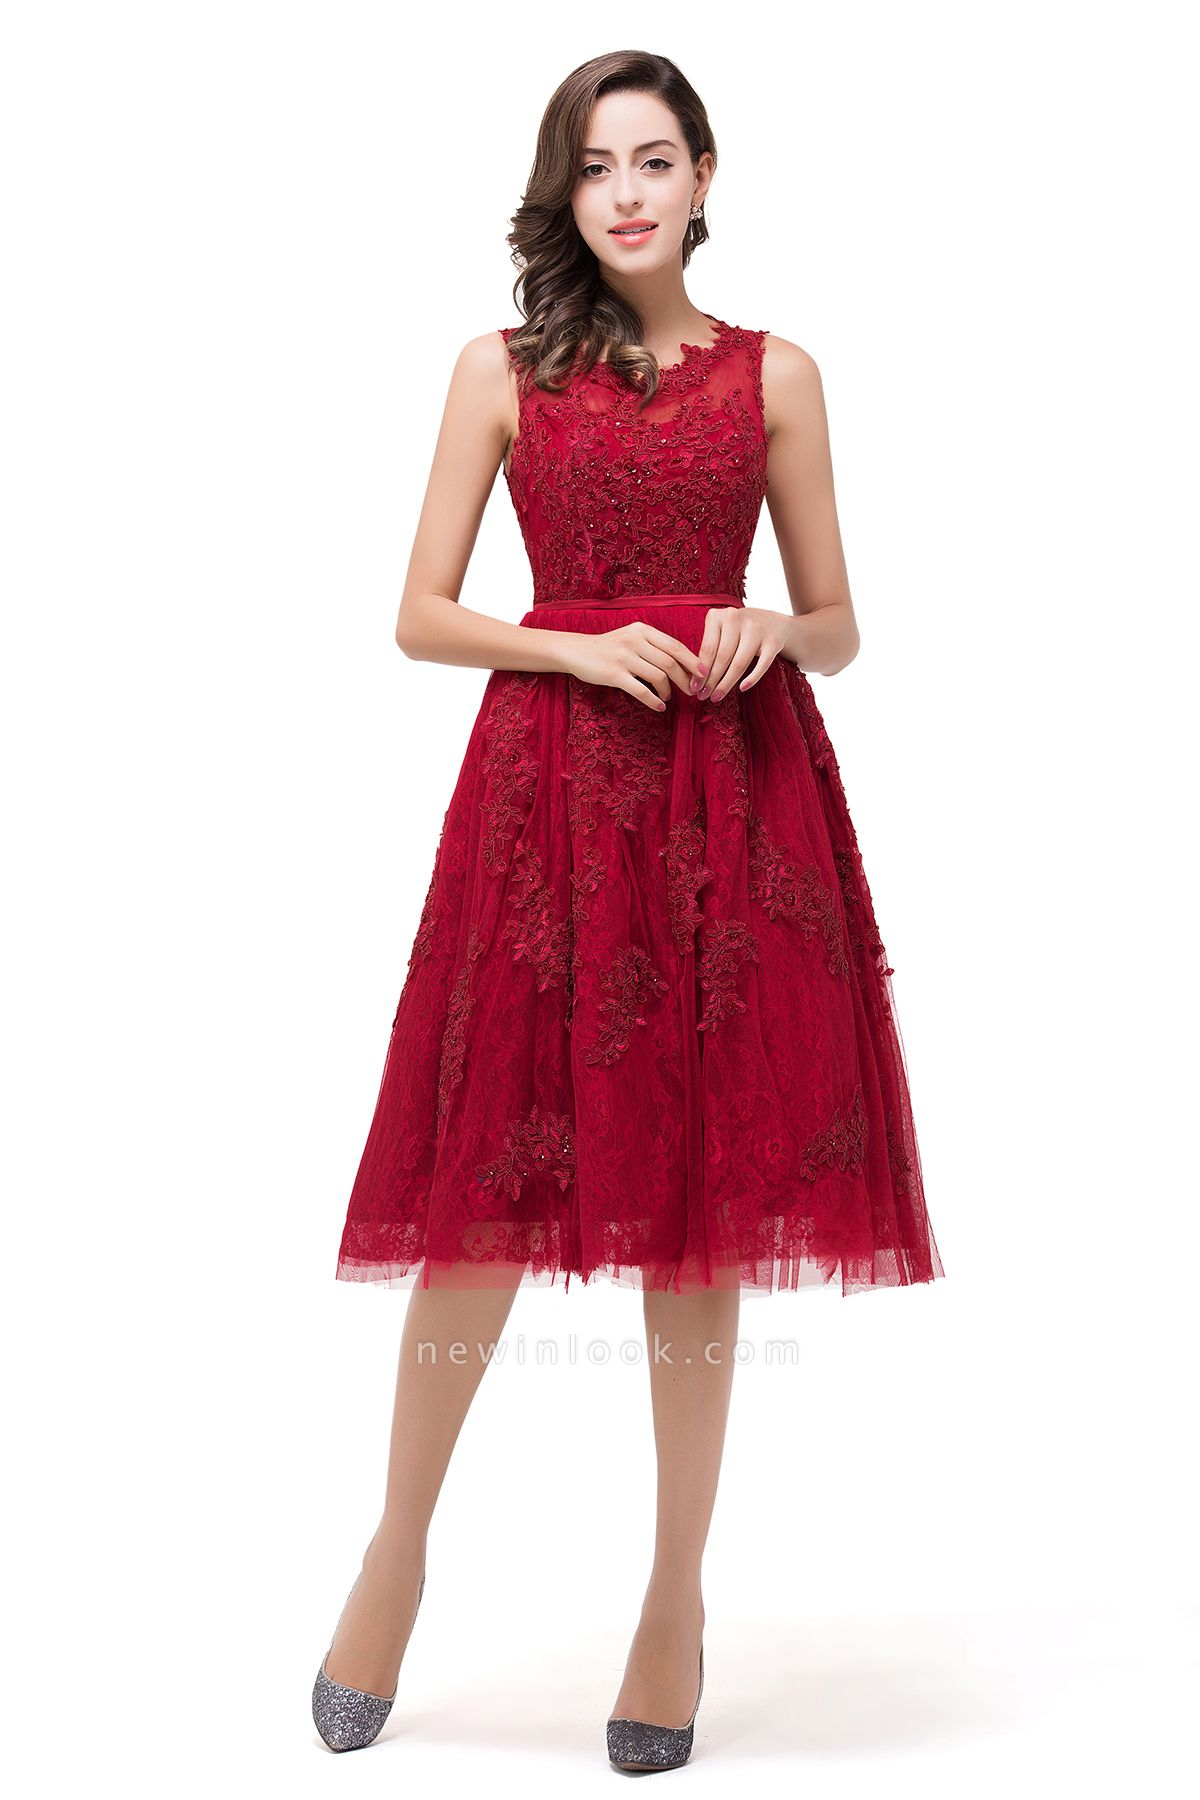 DANA | Quinceanera Knee-Length Red Lace Tull Dama Dresses with sequins